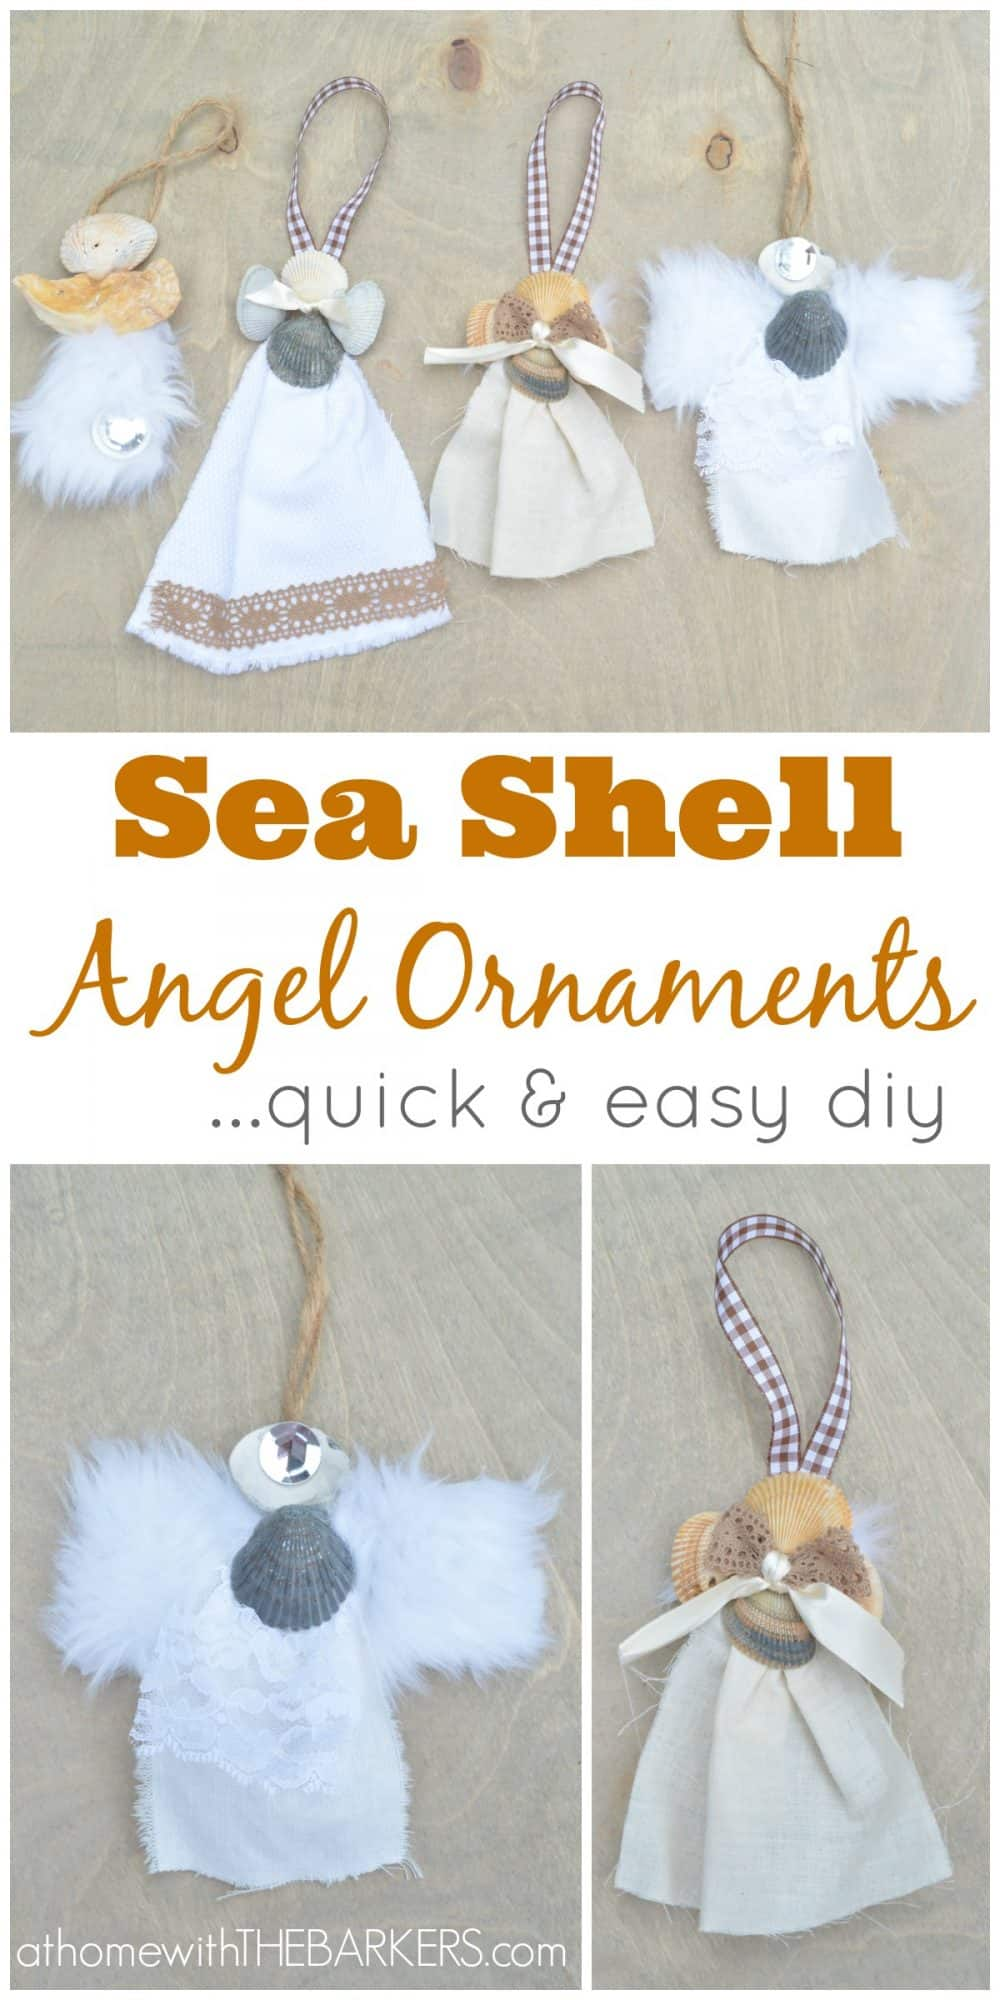 Sea Shell Angel Ornaments Or Gift Accessory At Home